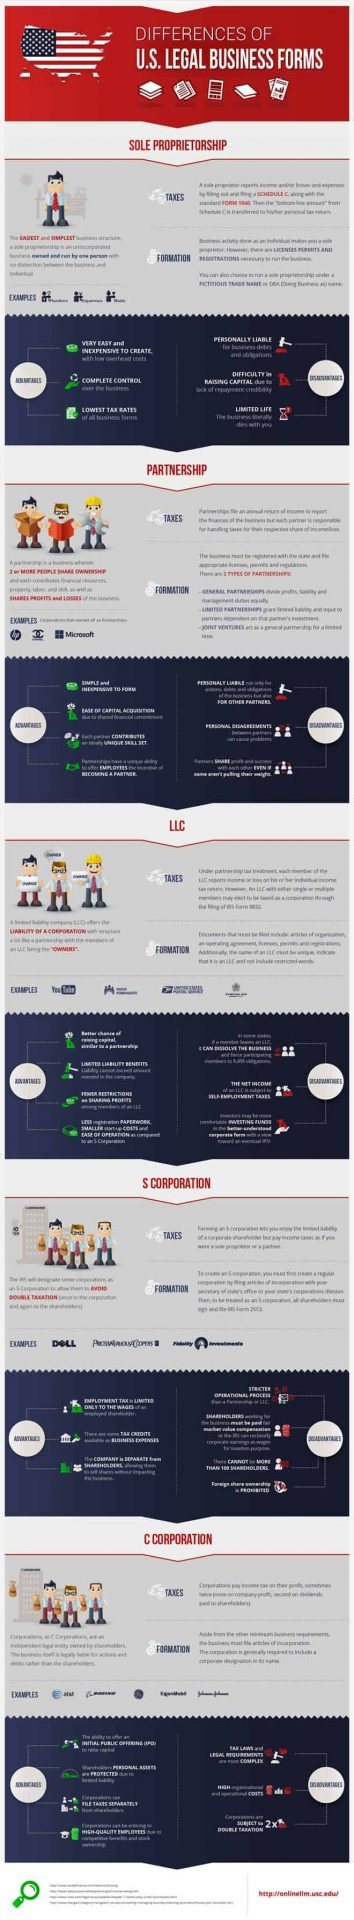 Cheat Sheet to Business Structures [INFOGRAPHIC]